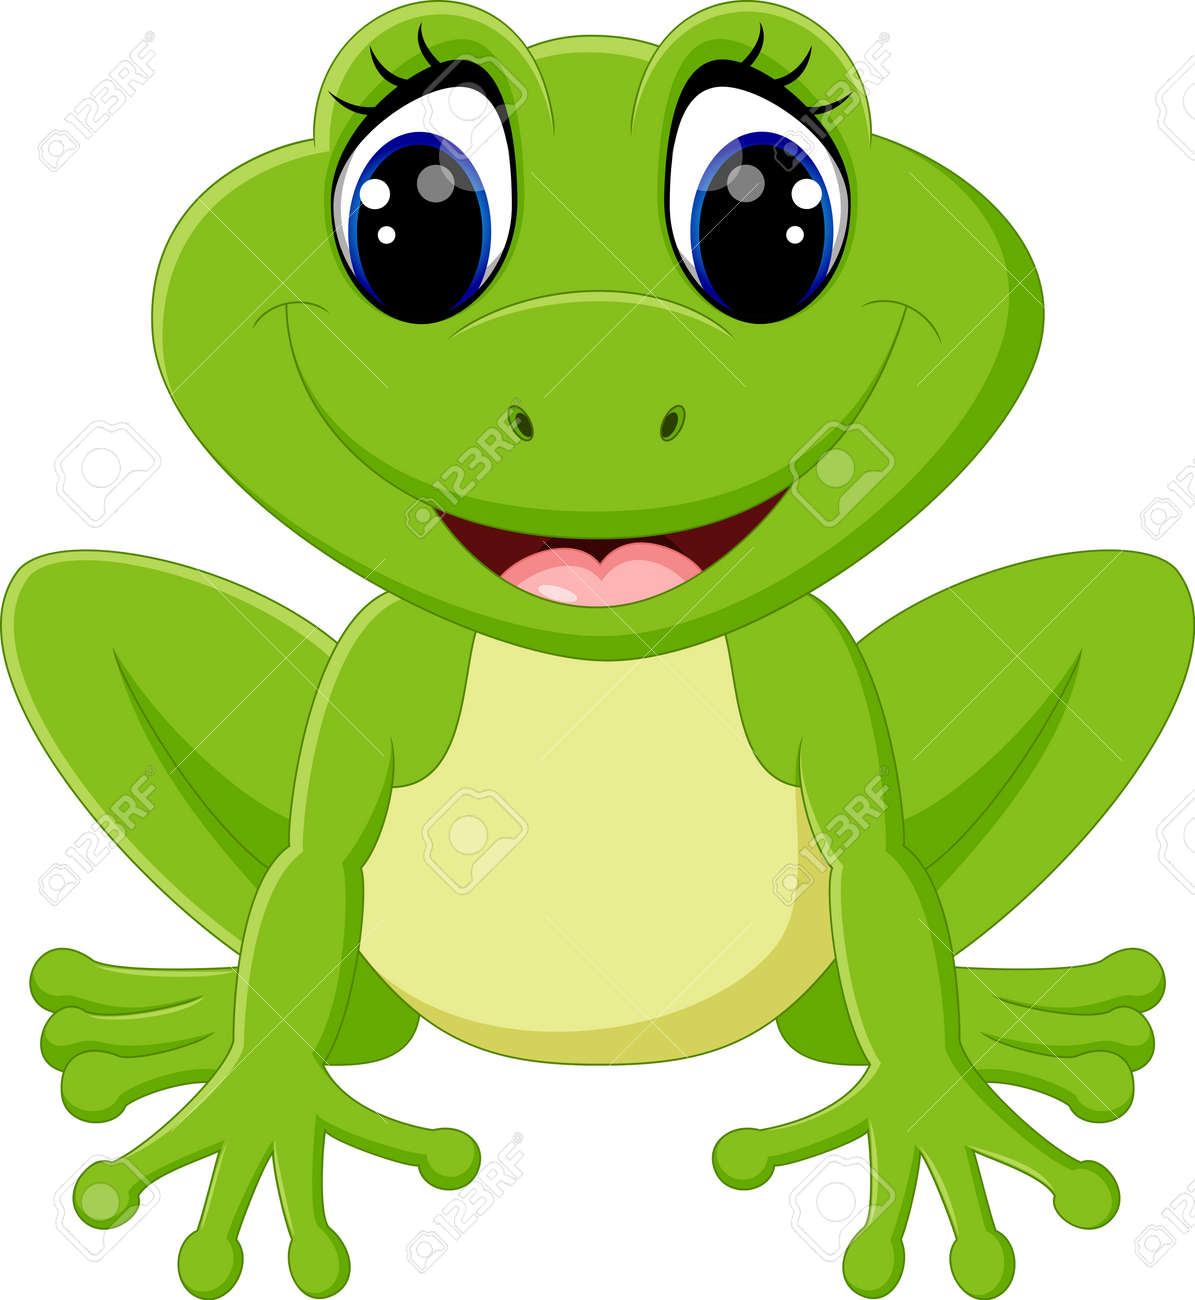 8 292 cute frog cliparts stock vector and royalty free cute frog rh 123rf com cute frog clipart cute frog clipart png